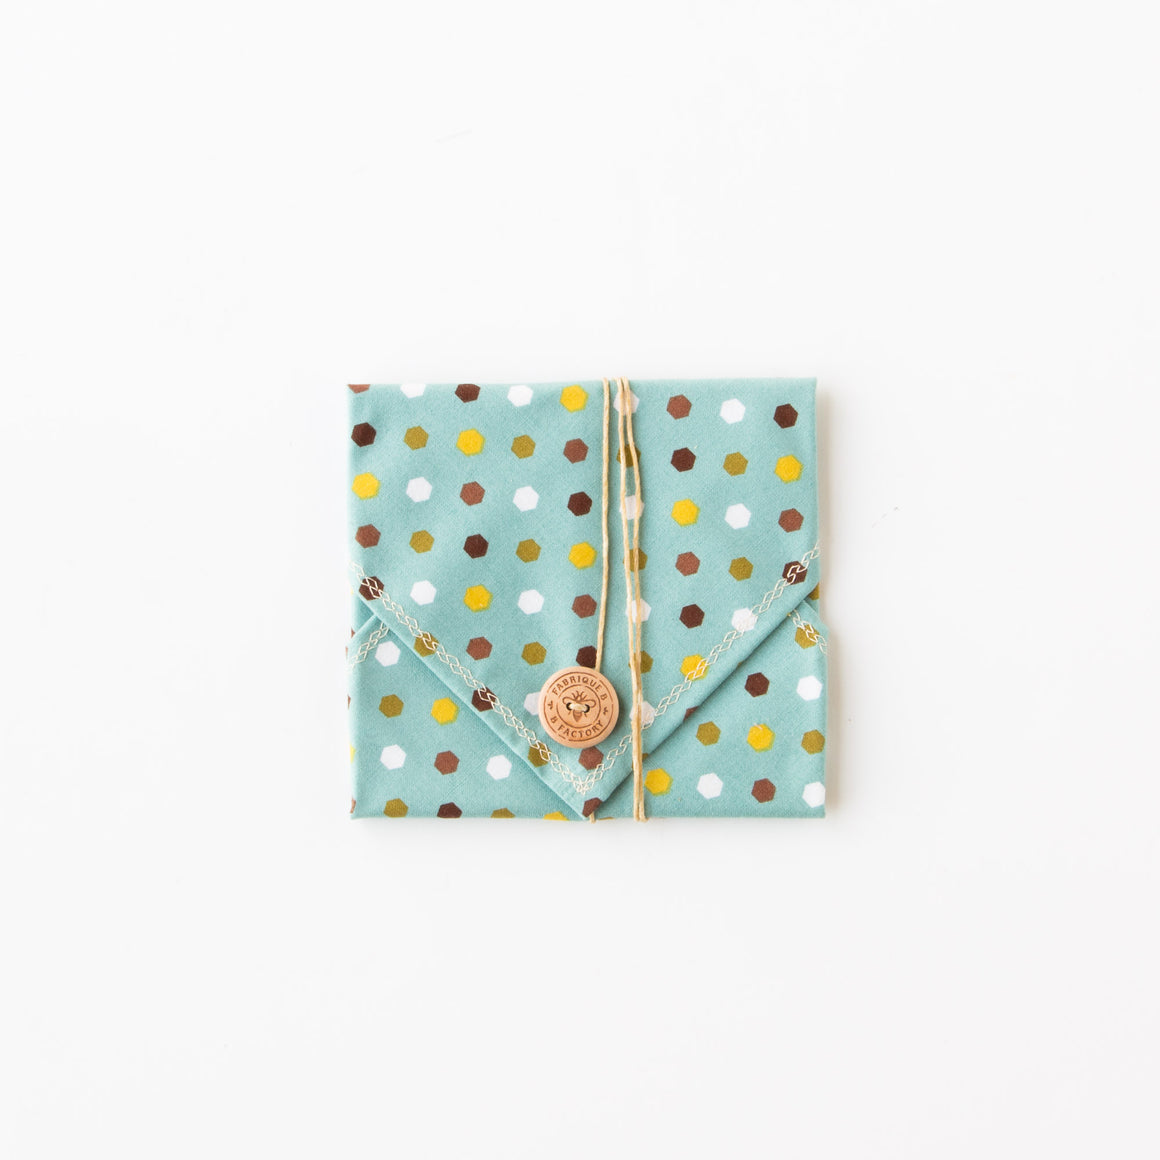 Blue Plaid - Bees Wax Sandwich Wrap - Eco Friendly & Zero Waste - Sold by Chic & Basta